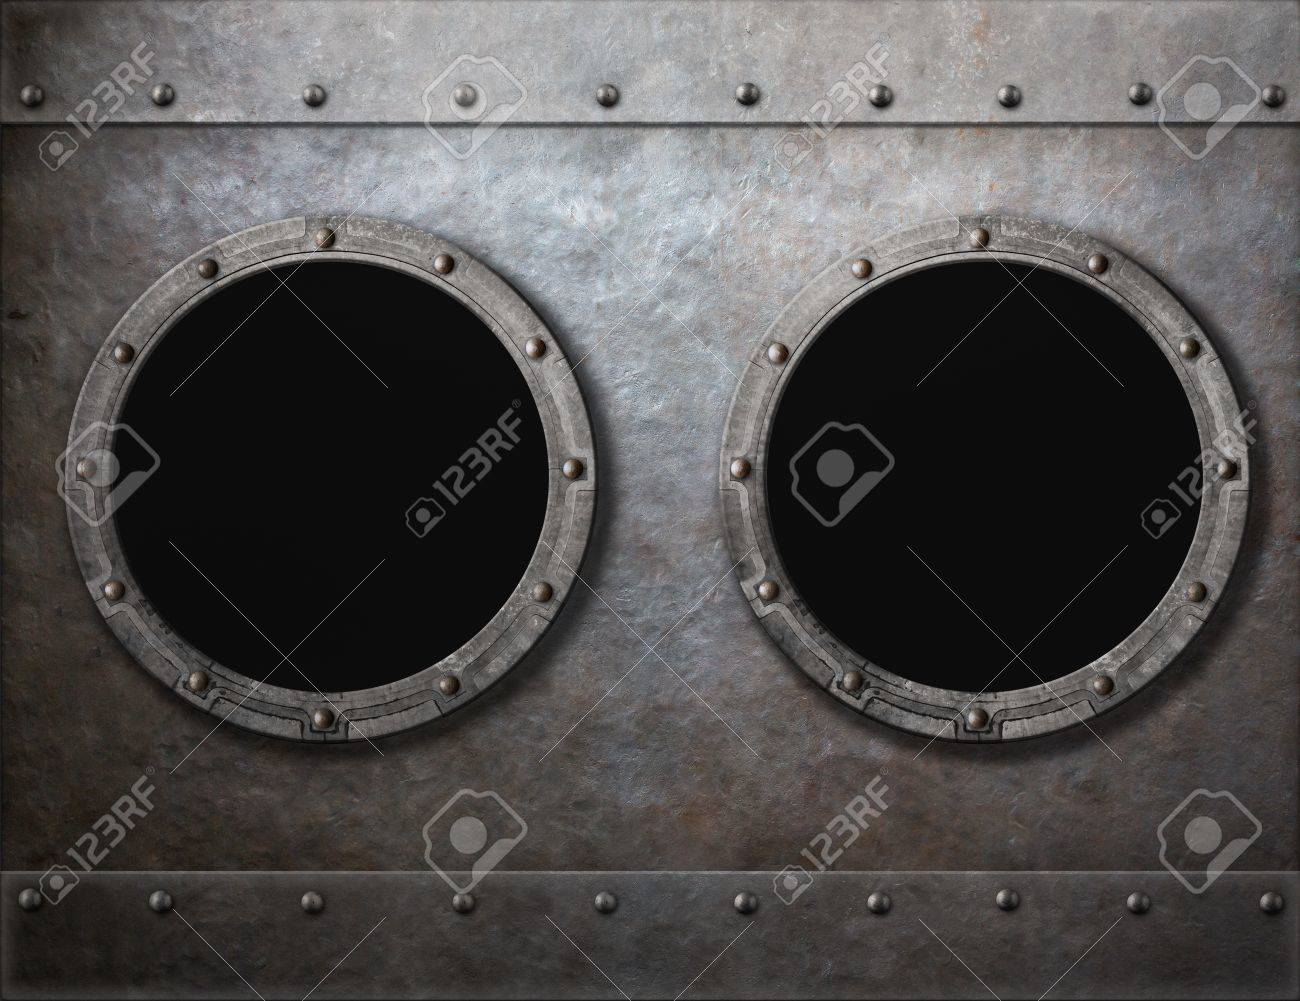 Submarine or old ship two portholes metal frames background stock submarine or old ship two portholes metal frames background stock photo 36628596 jeuxipadfo Image collections